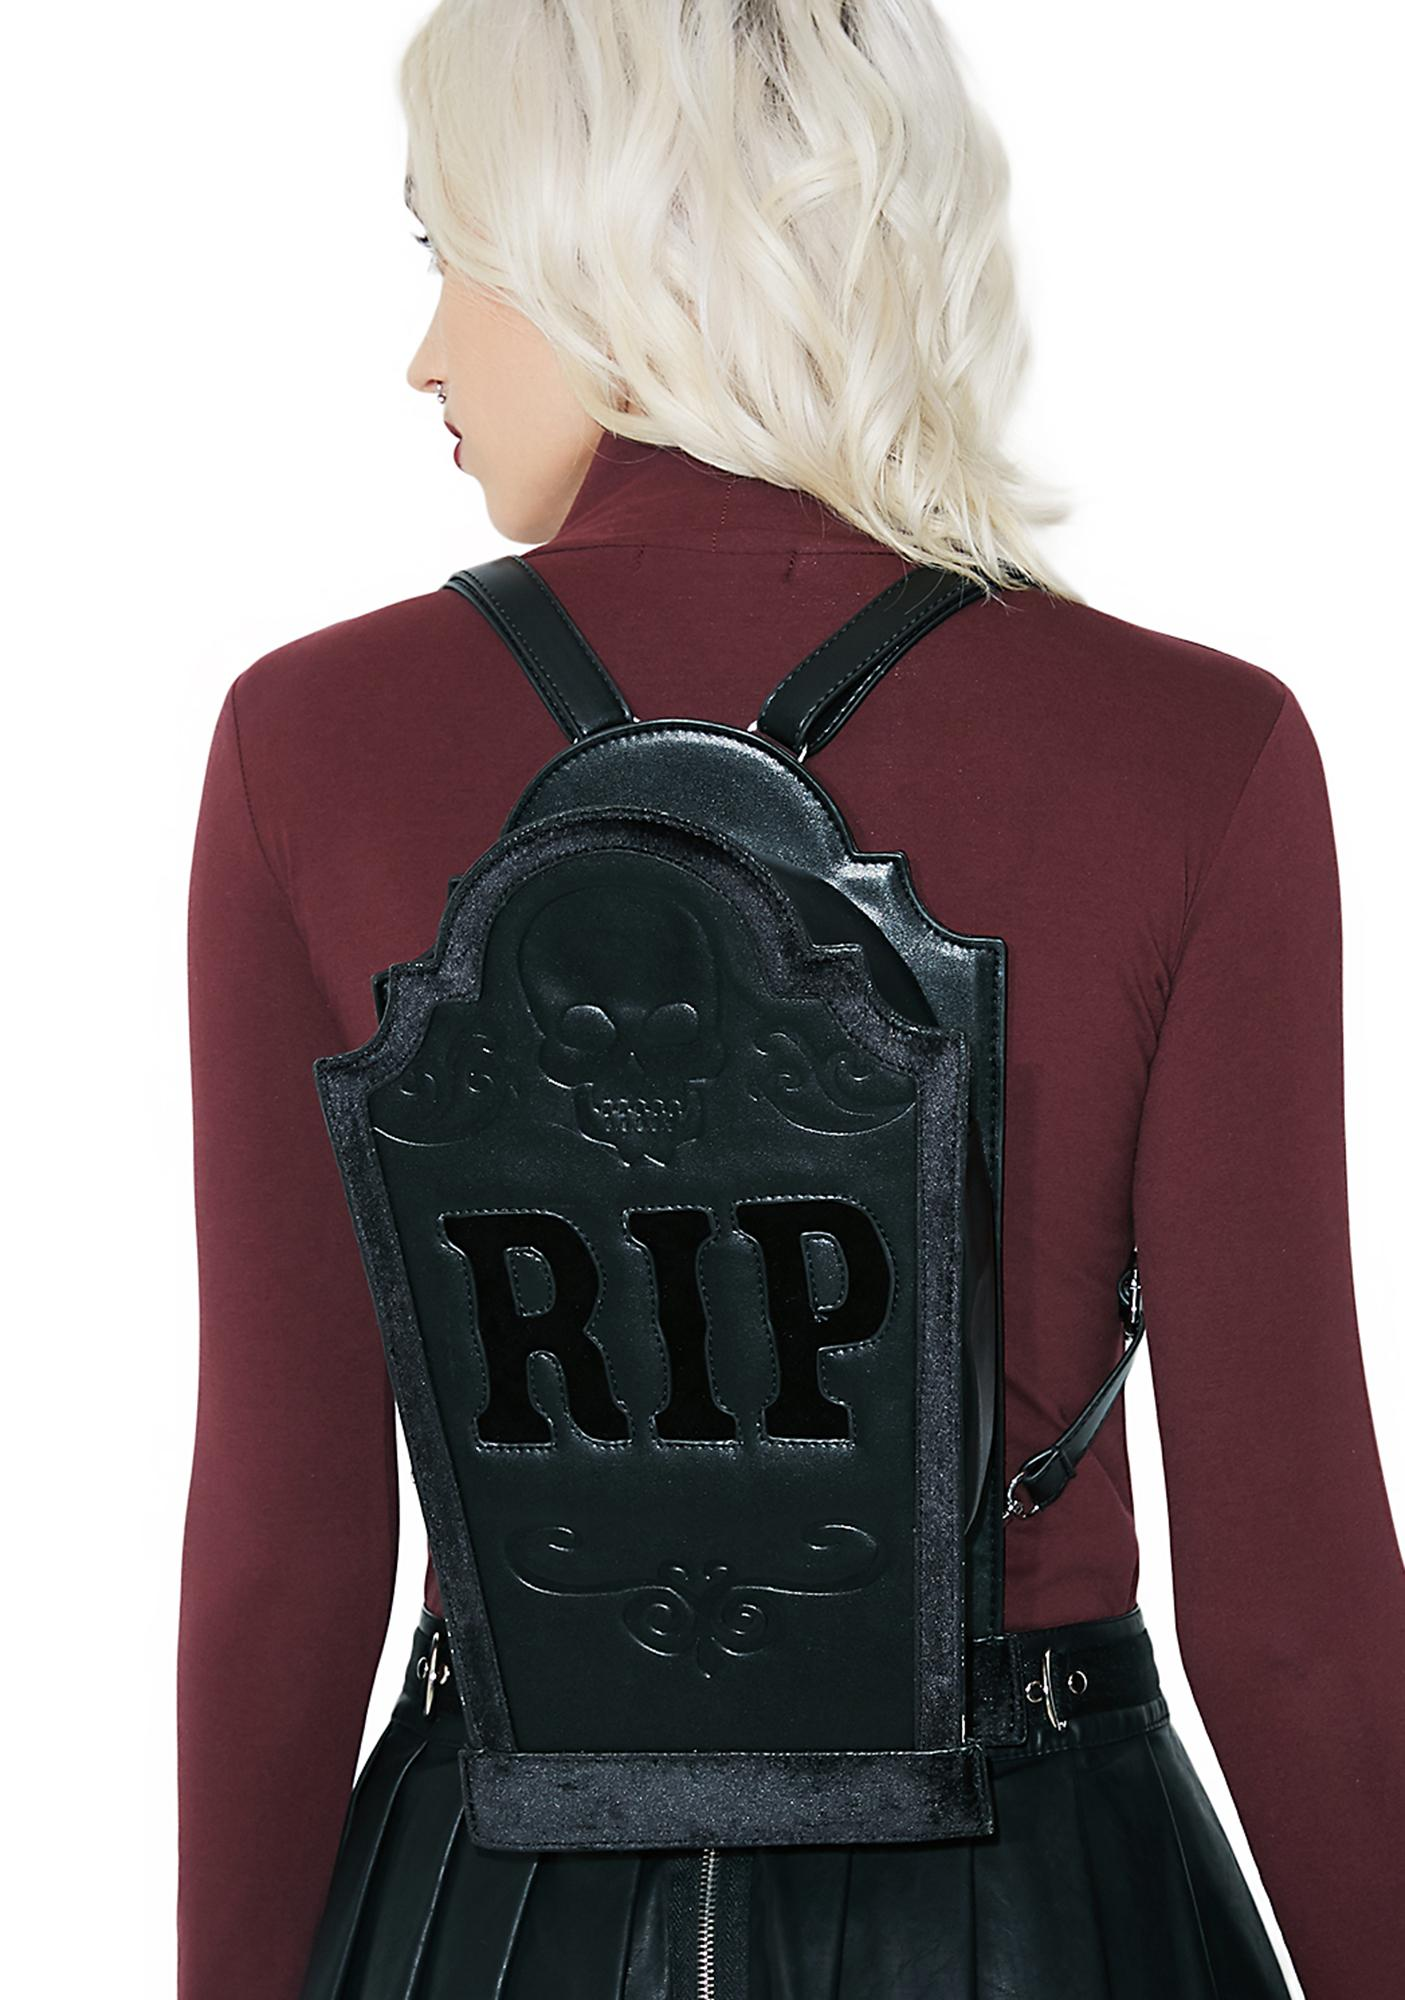 Current Mood Tombstone Bag